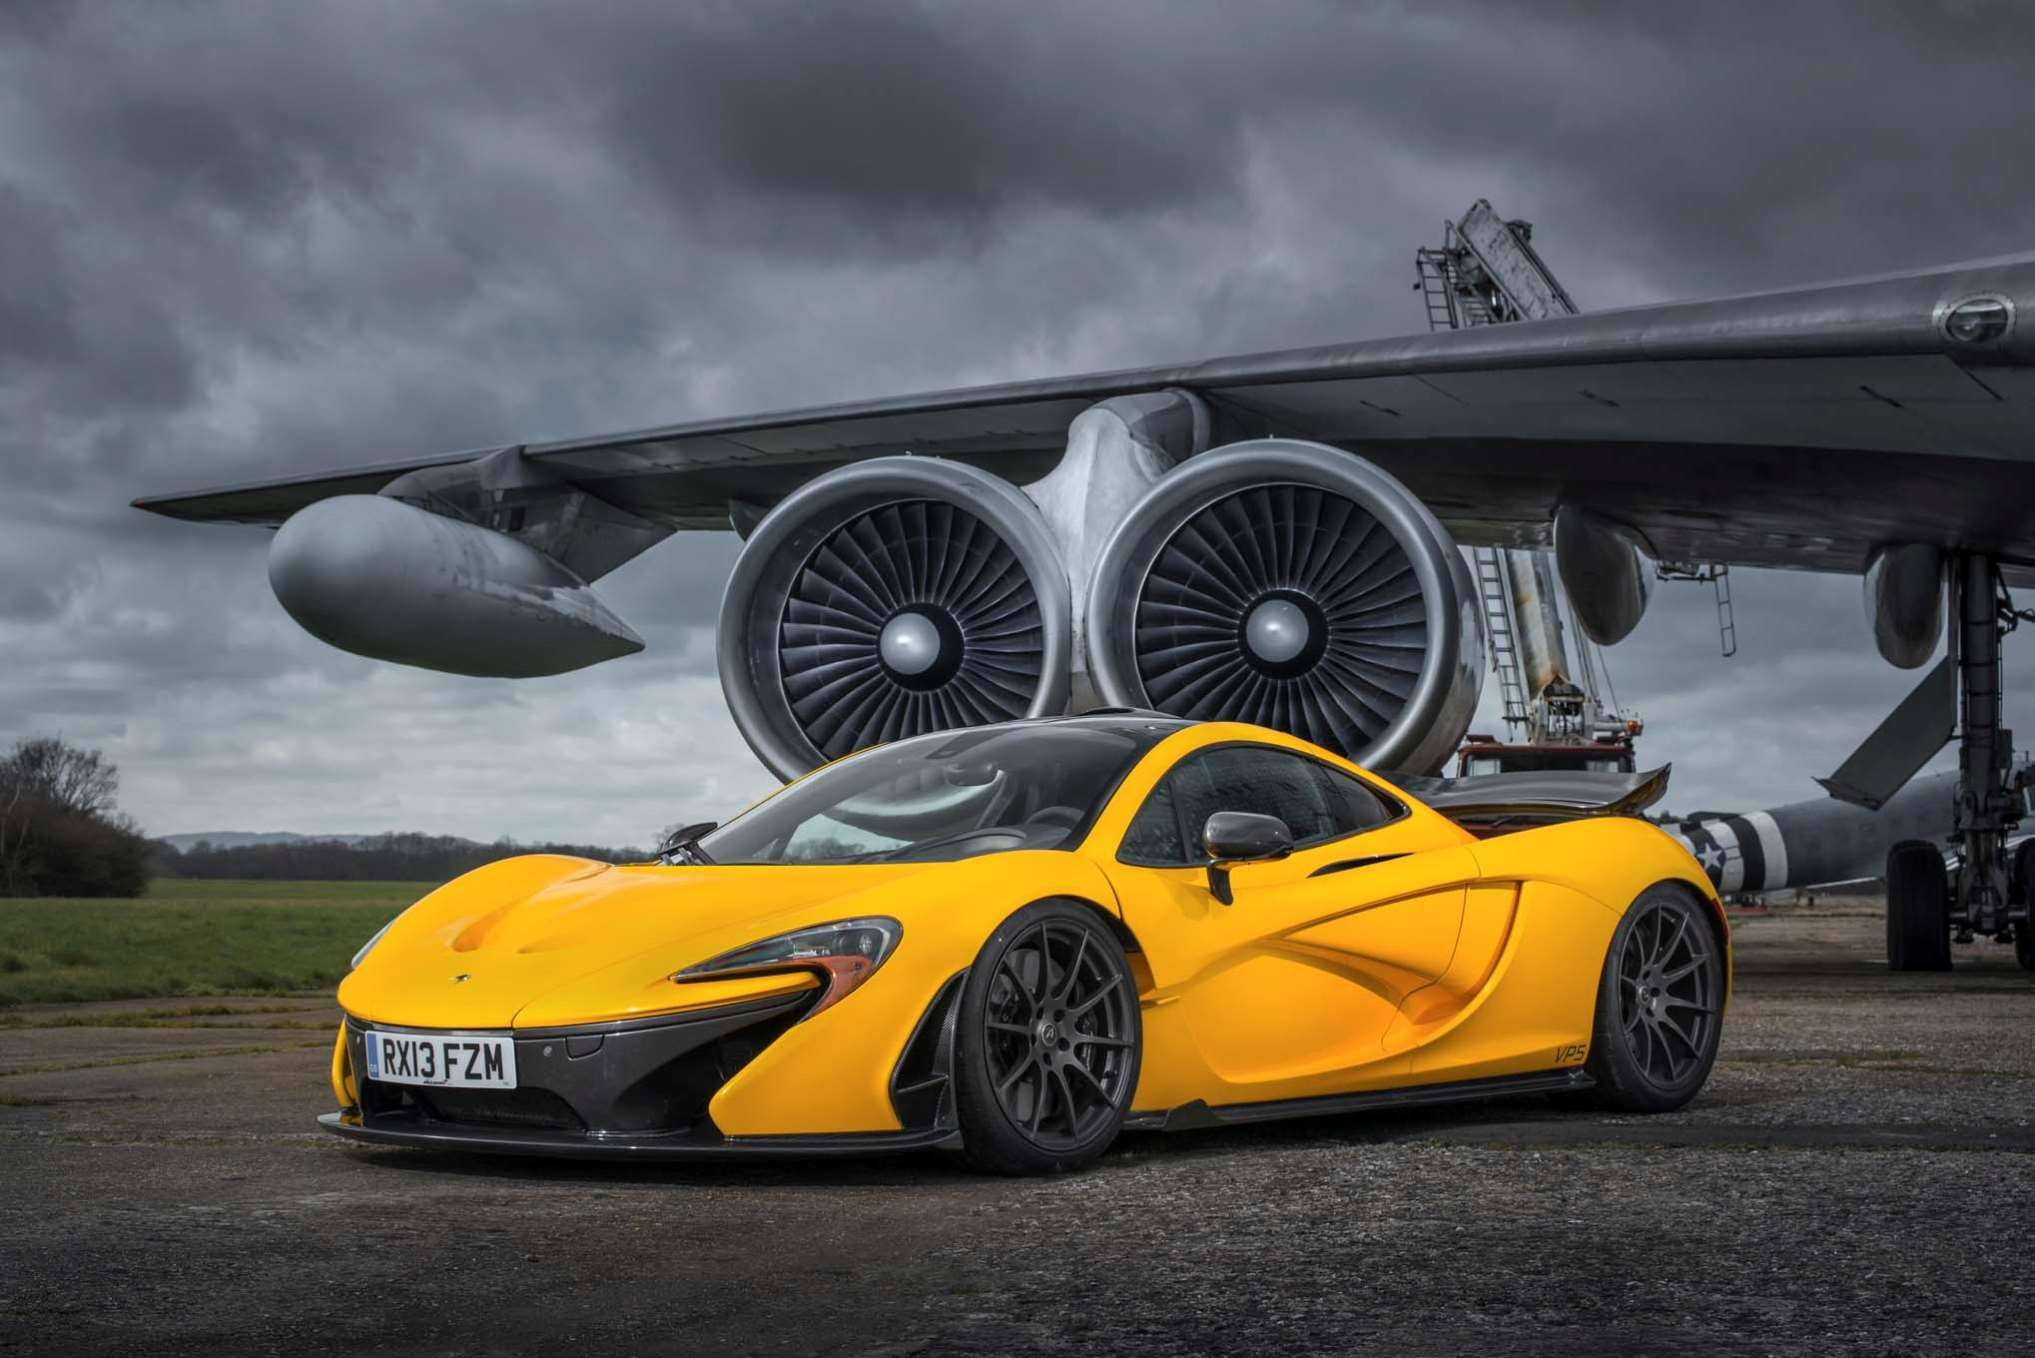 MCLAREN P Specific Output Hpliter Engine L - 8 expensive supercars 2014